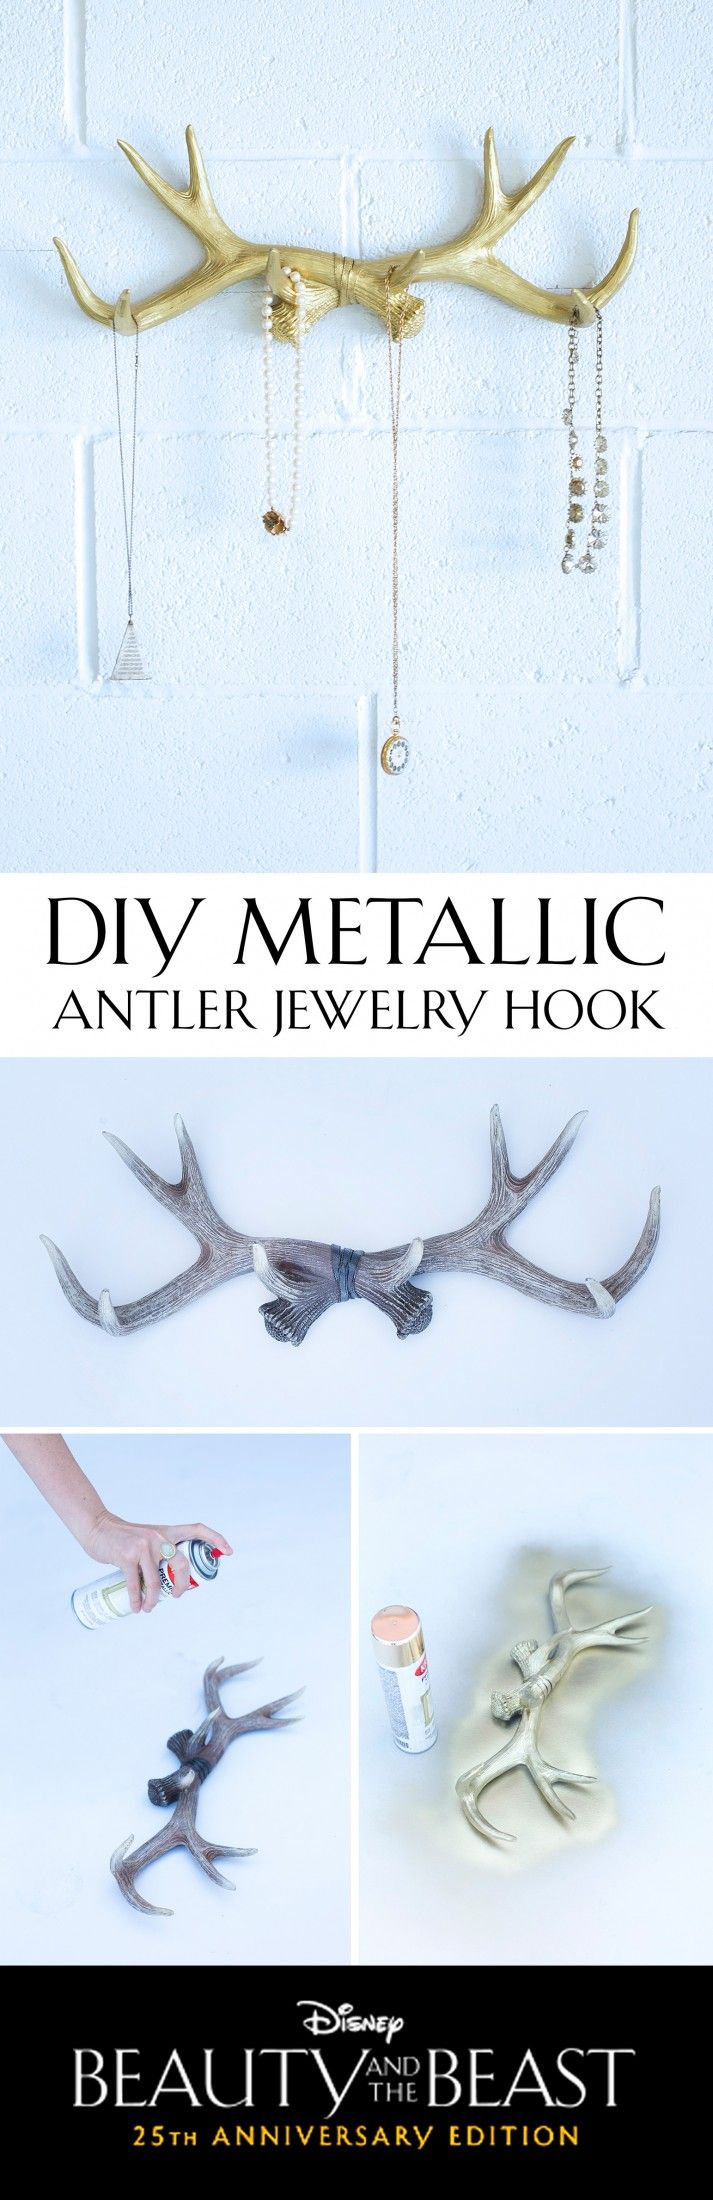 [ad] Refurbish rustic antlers to create a feminine jewelry hook for your home.